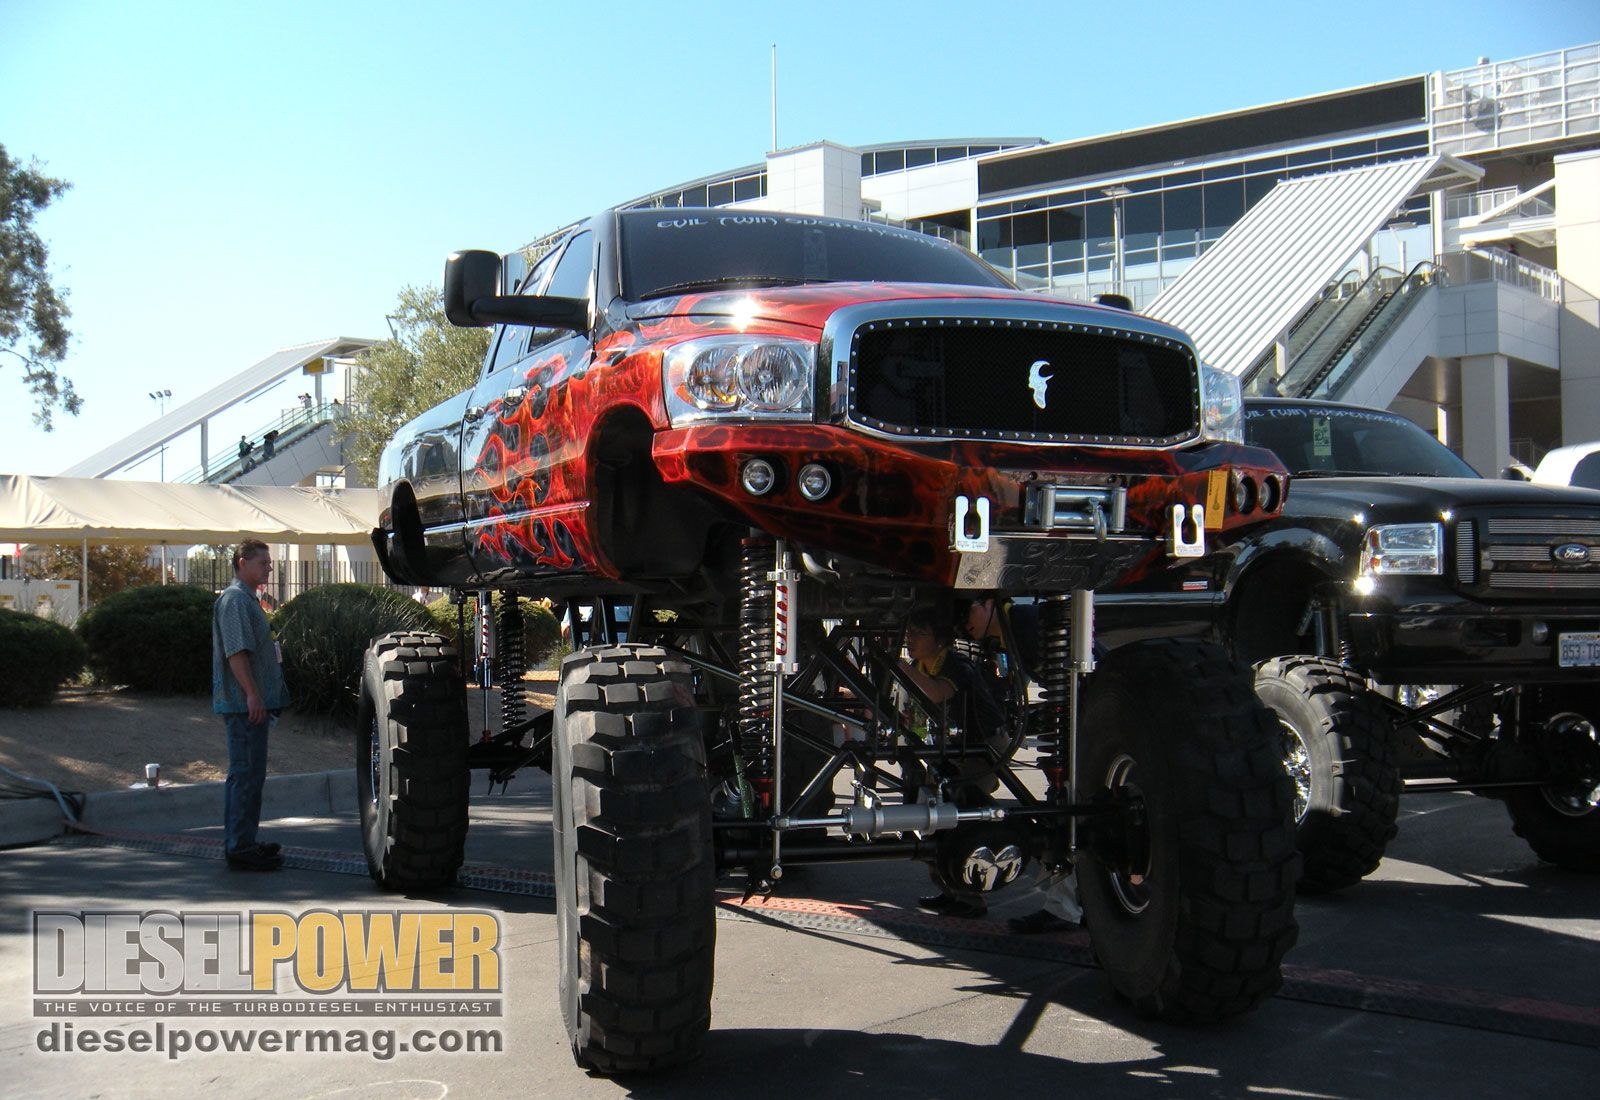 1000 images about dodge trucks on pinterest chevy dodge ram trucks and trucks - 2015 Dodge Ram 3500 Lifted